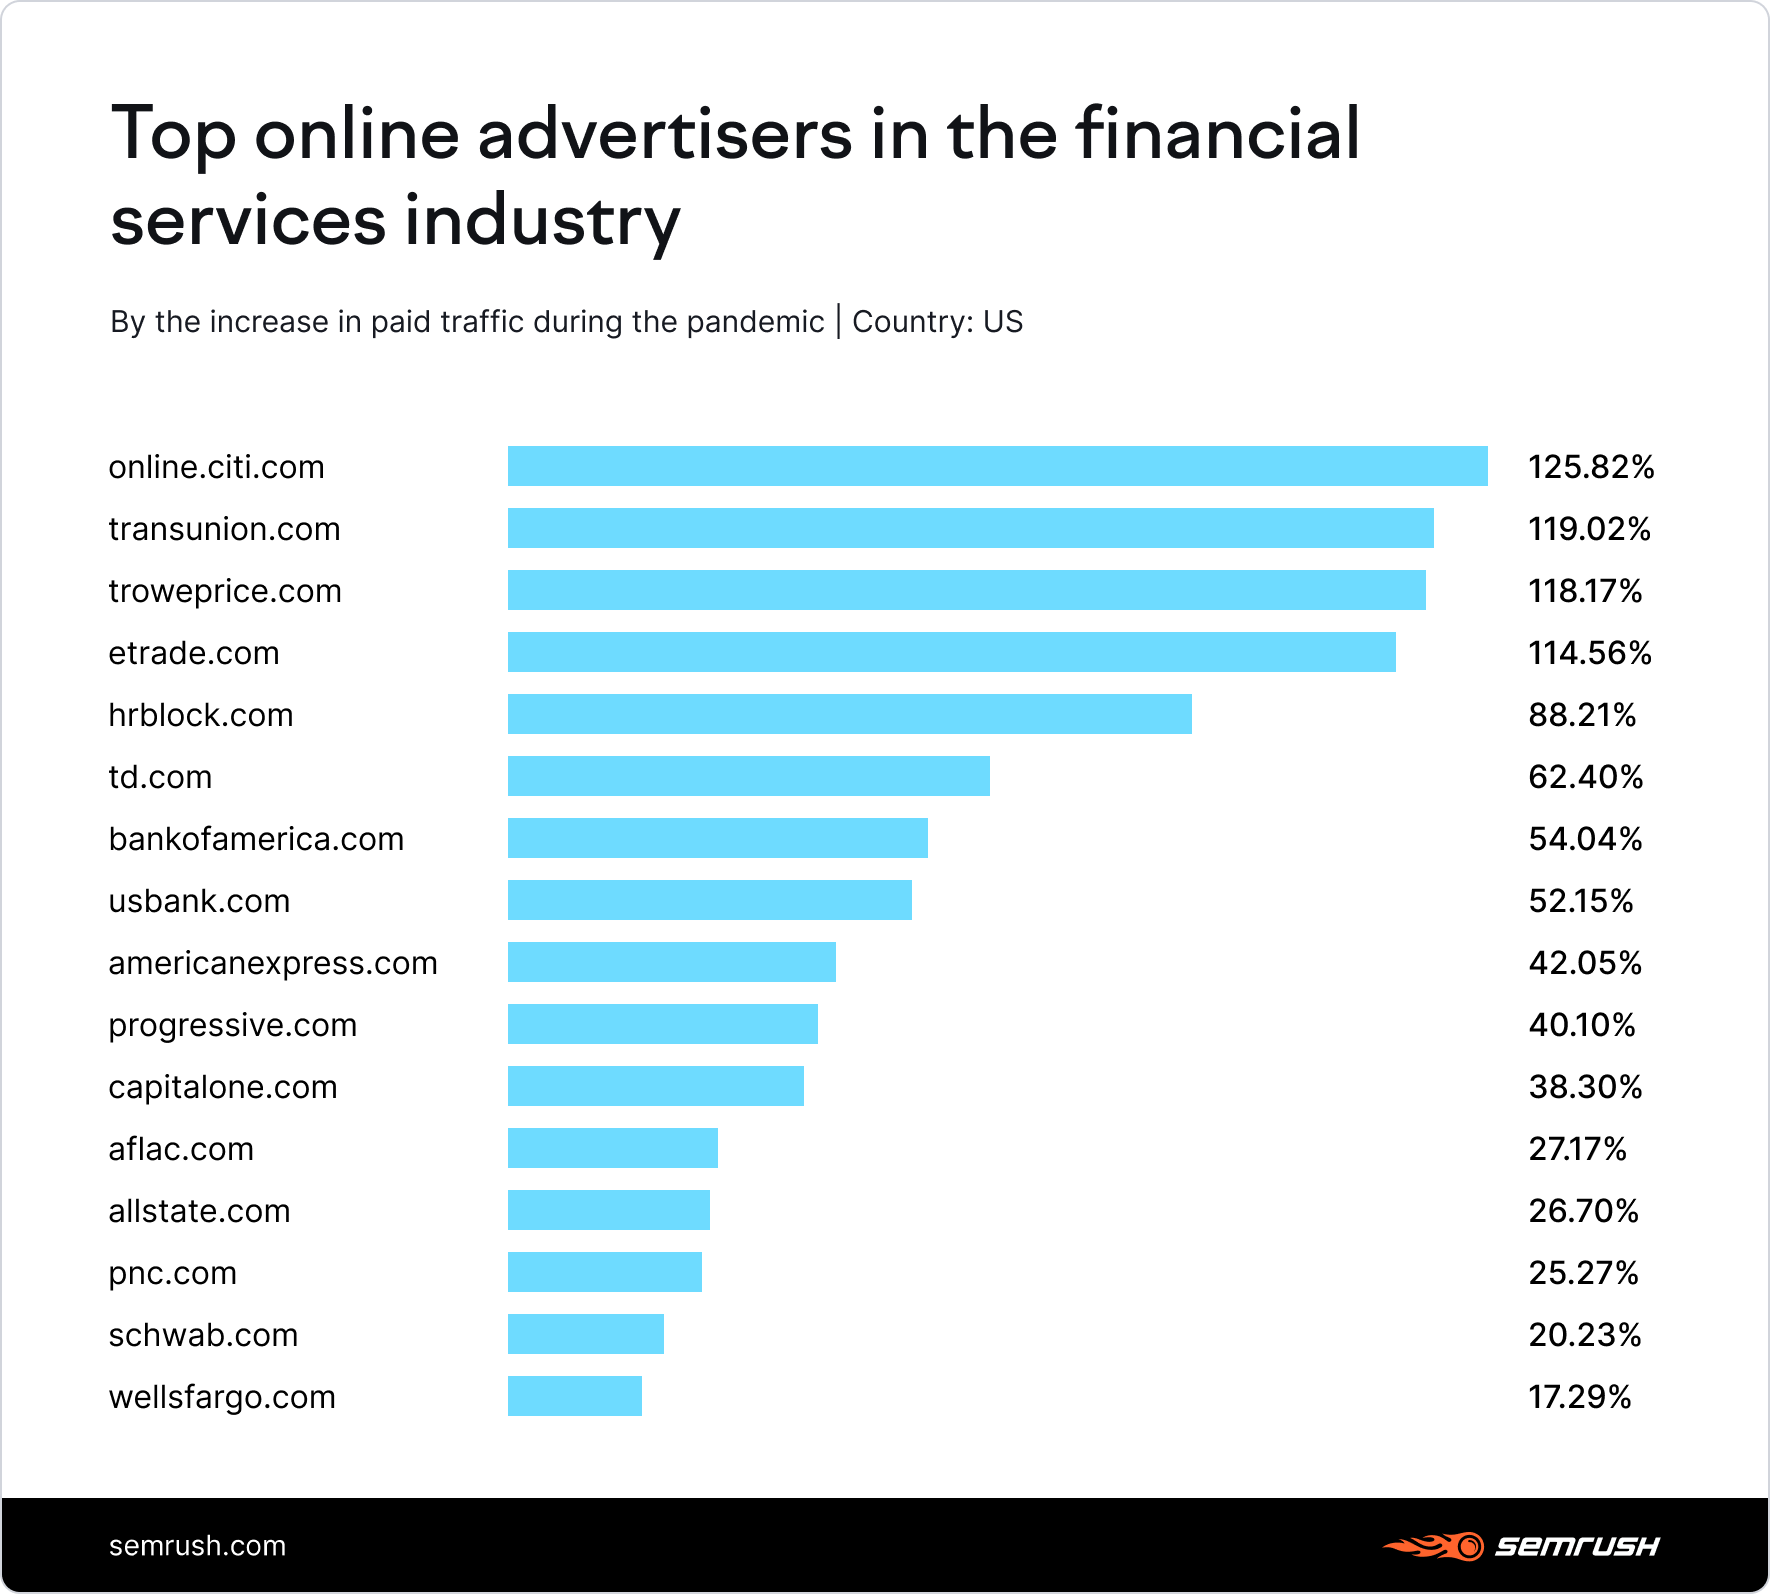 Top online advertisers in the financial services industry